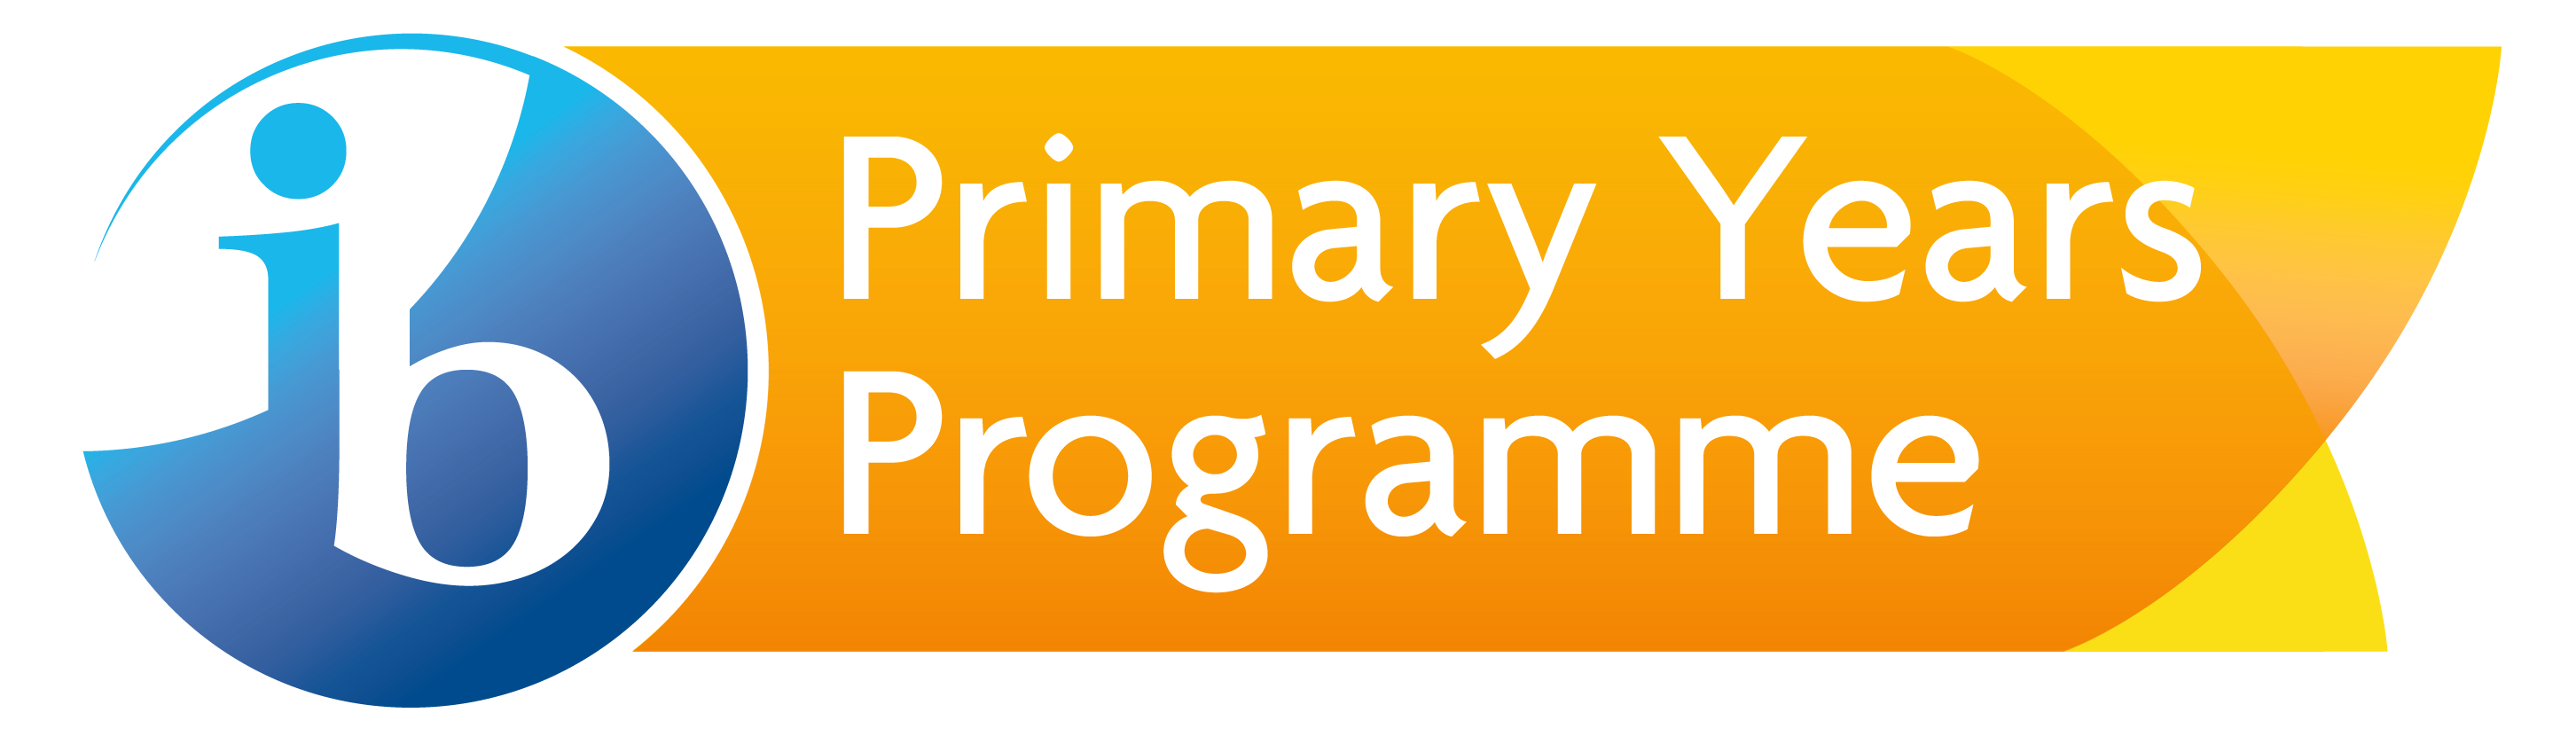 ib primary years program in hanoi